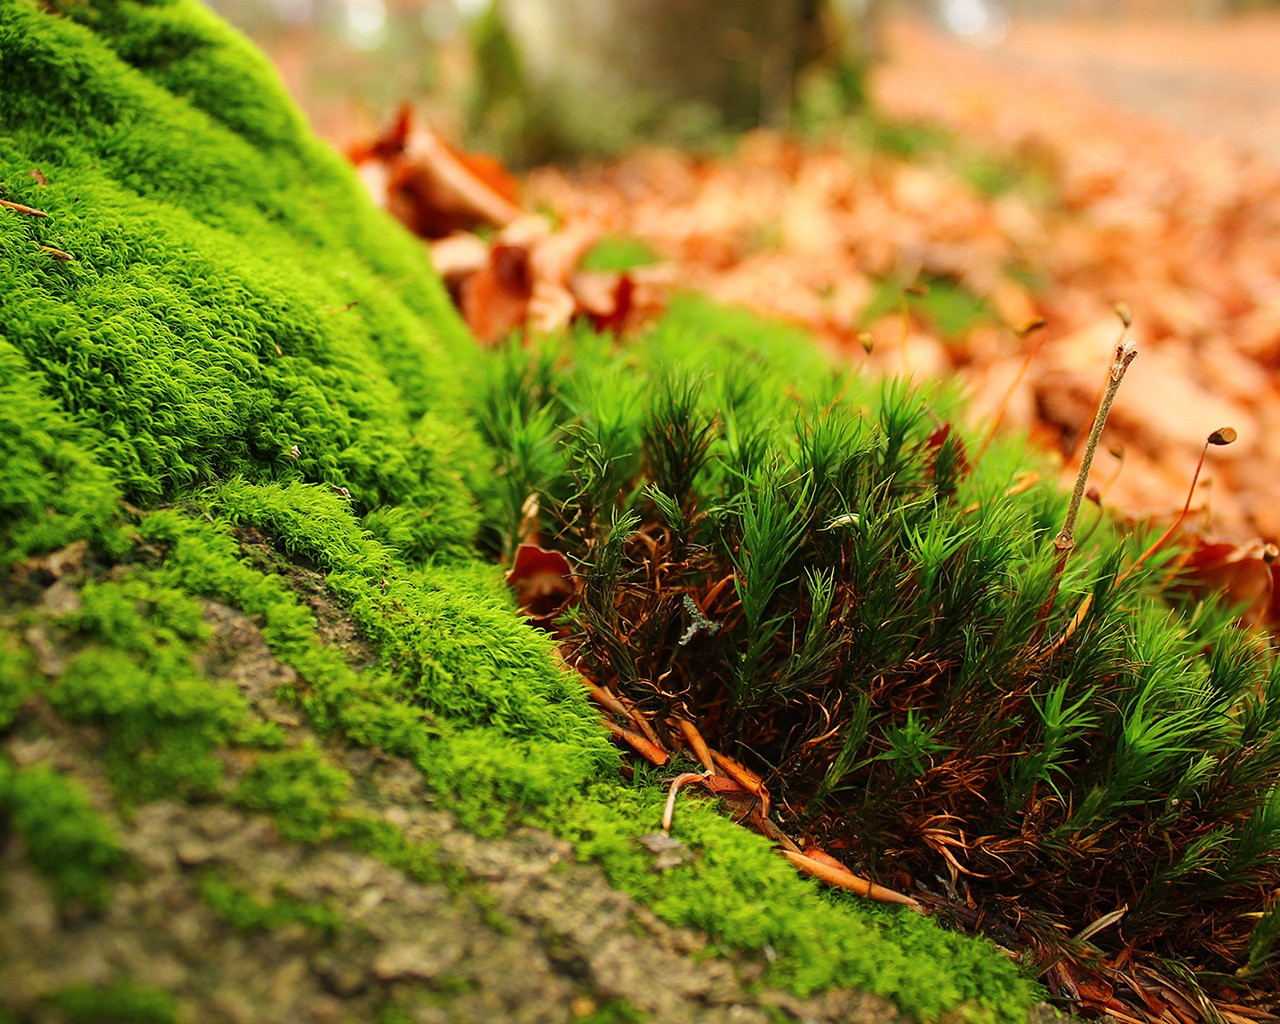 Amazing Moss for 1280 x 1024 resolution